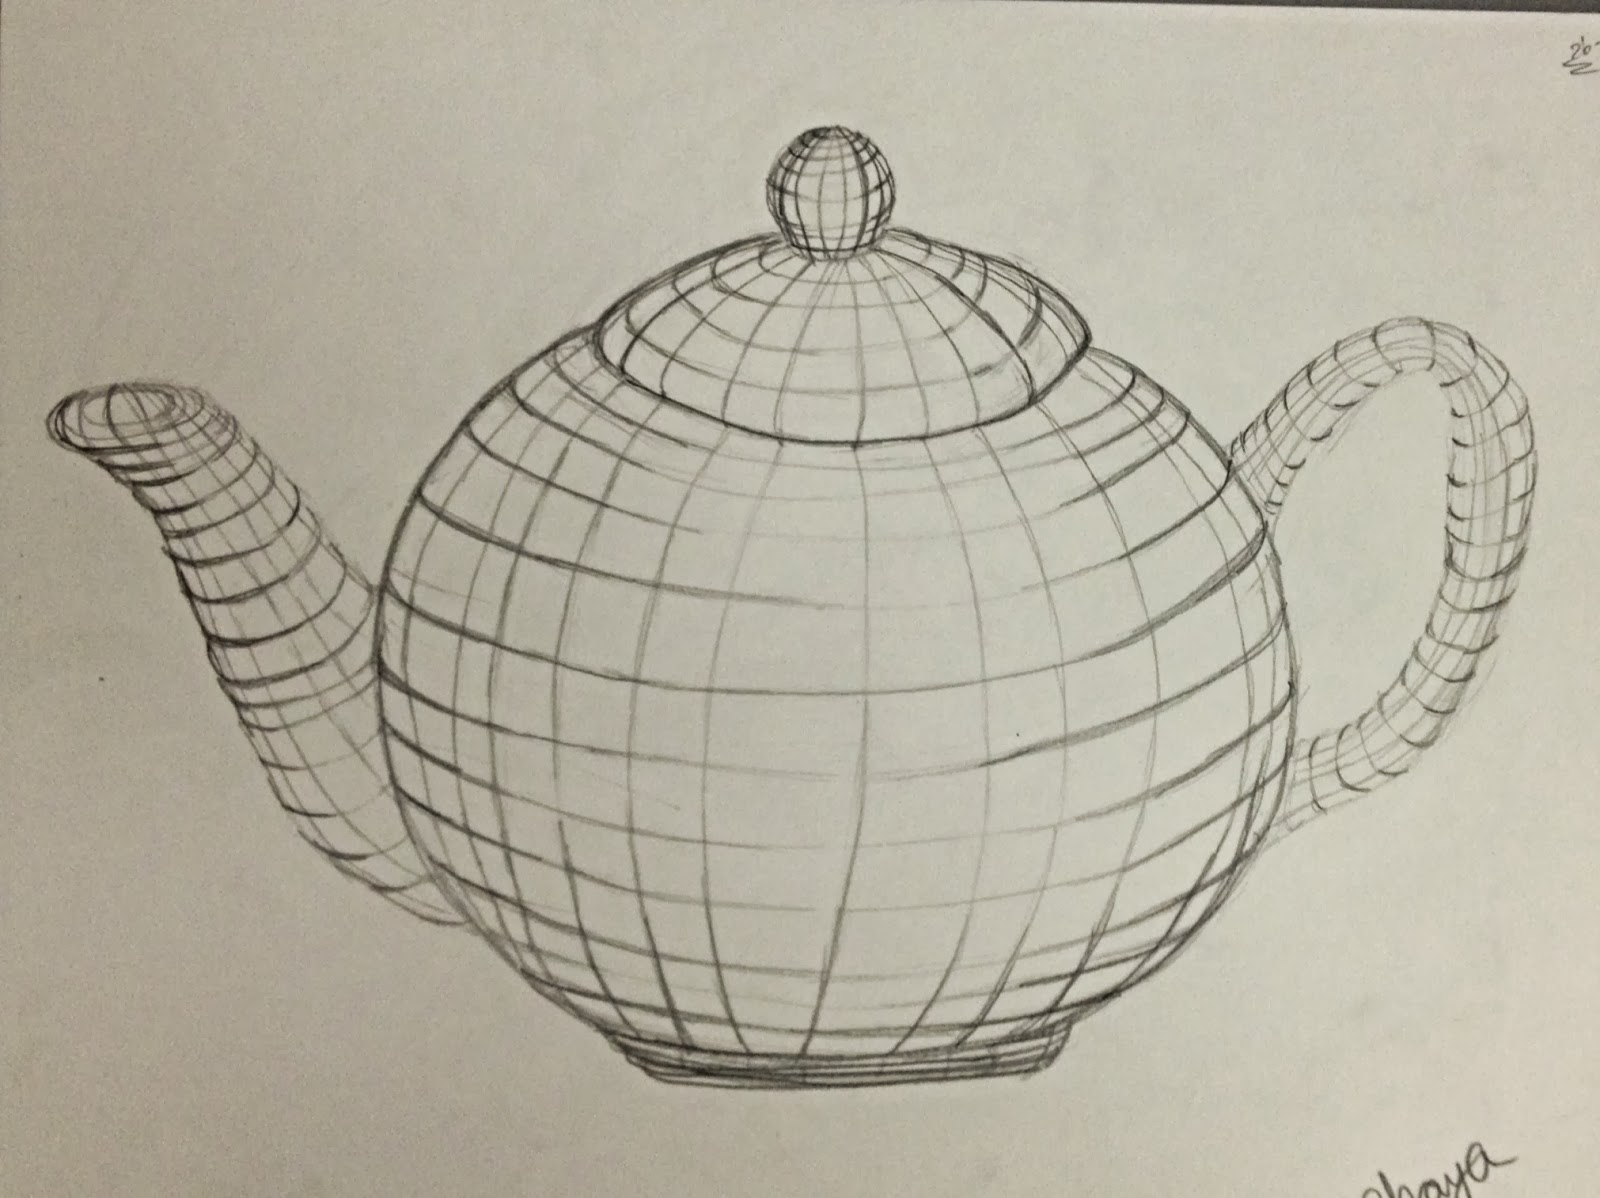 Contour Line Drawing In Art : Cross contour line drawing brush strokes by estee art classes